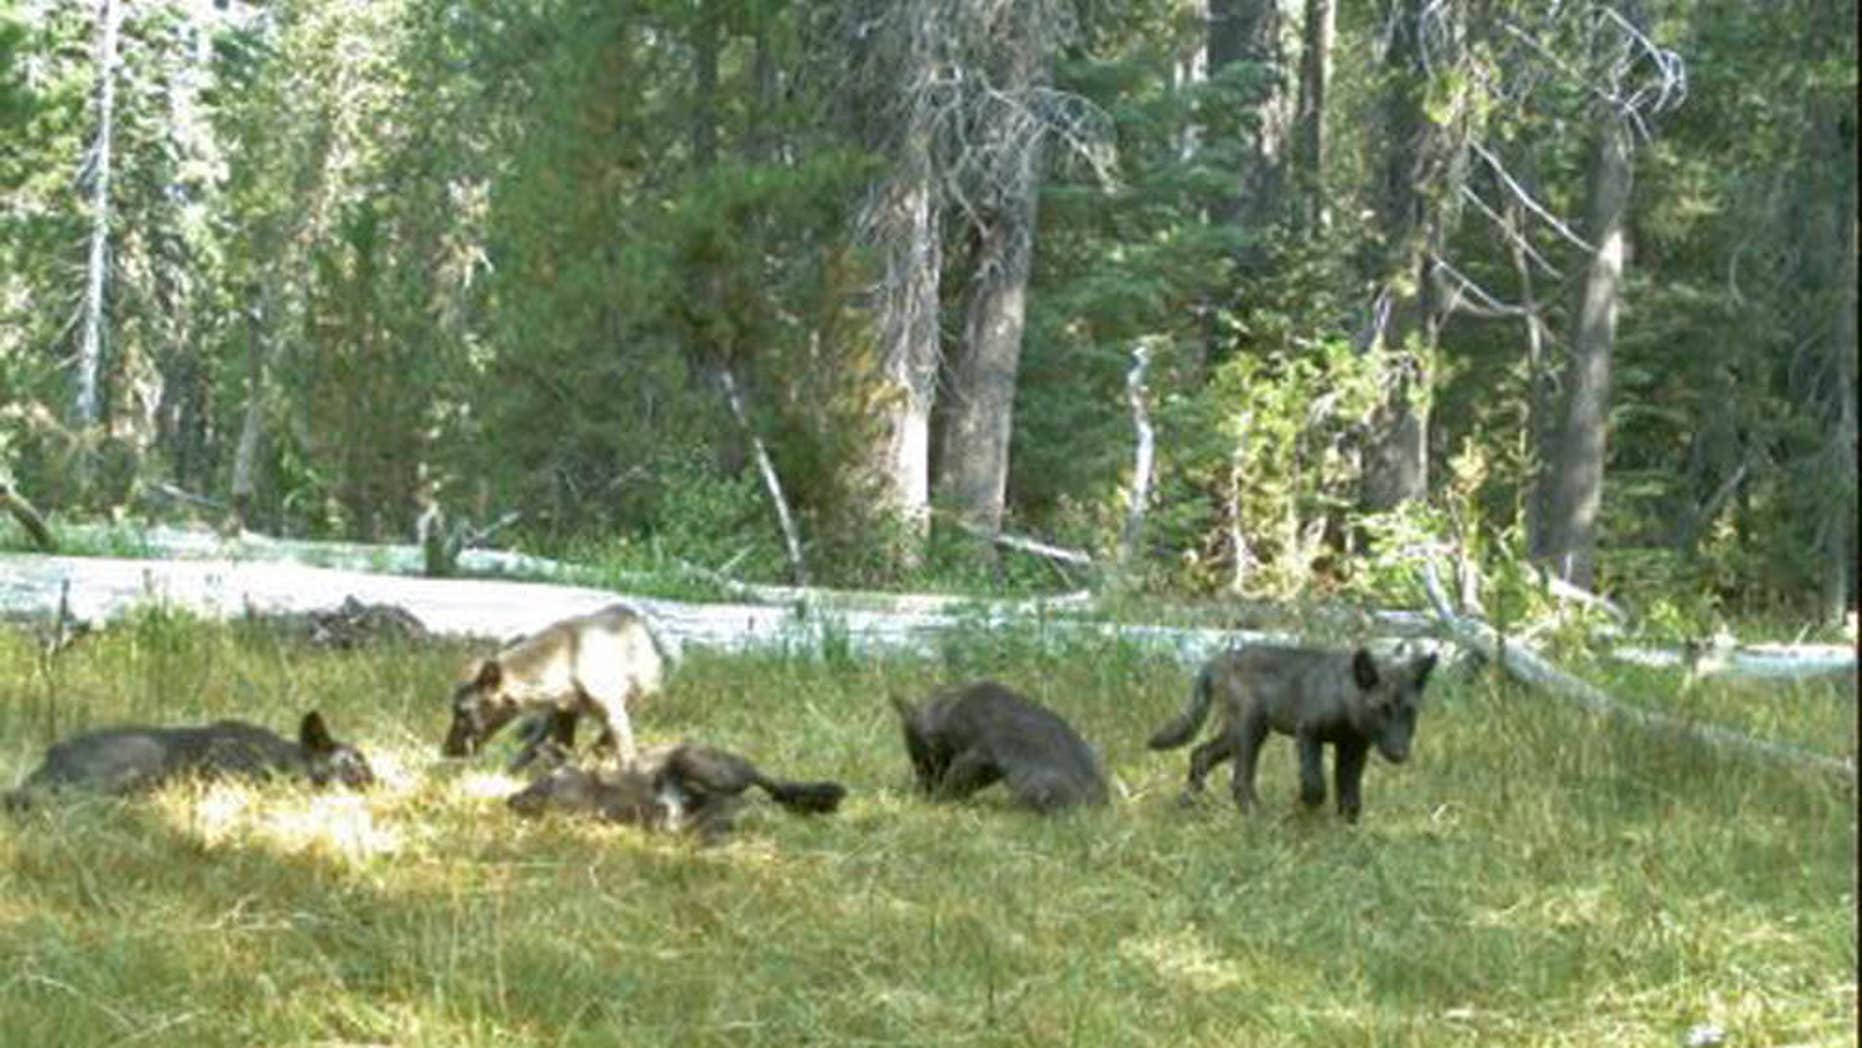 Aug. 9, 2015: image from video released by the California Dept. of Fish and Wildlife shows evidence of five gray wolf pups and two adults in Northern California.